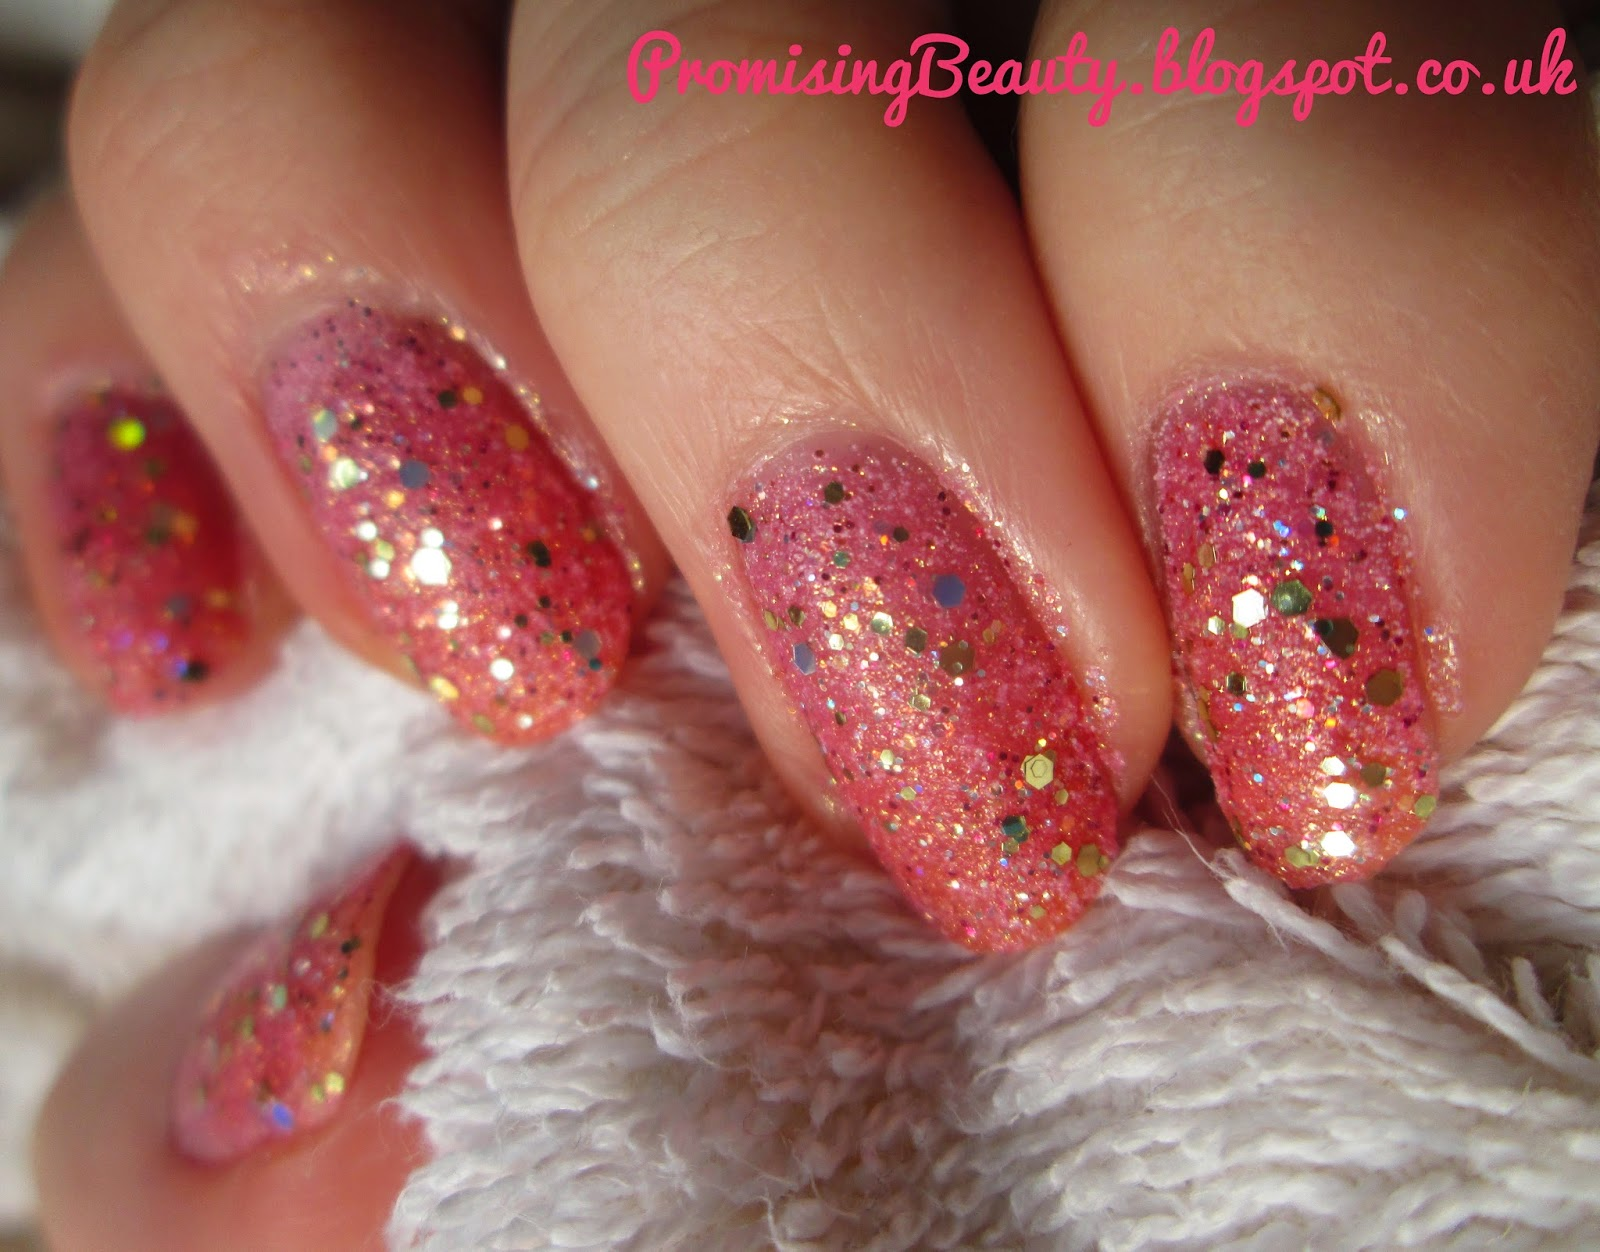 Pink champagne valentines day manicure. Miss sporty 3D polish. Pink glitter barbie nails with Barry M yellow topaz